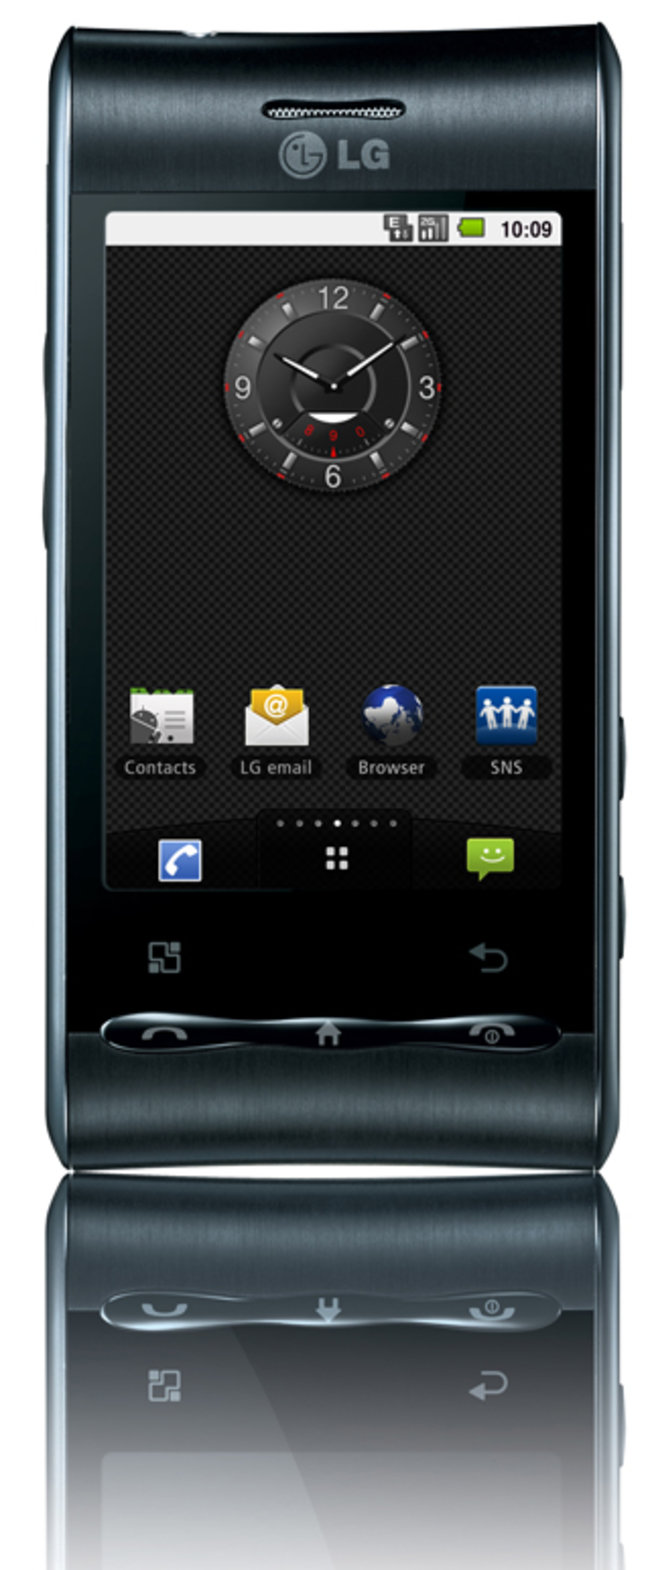 Android made easy with the LG Optimus - photo 3